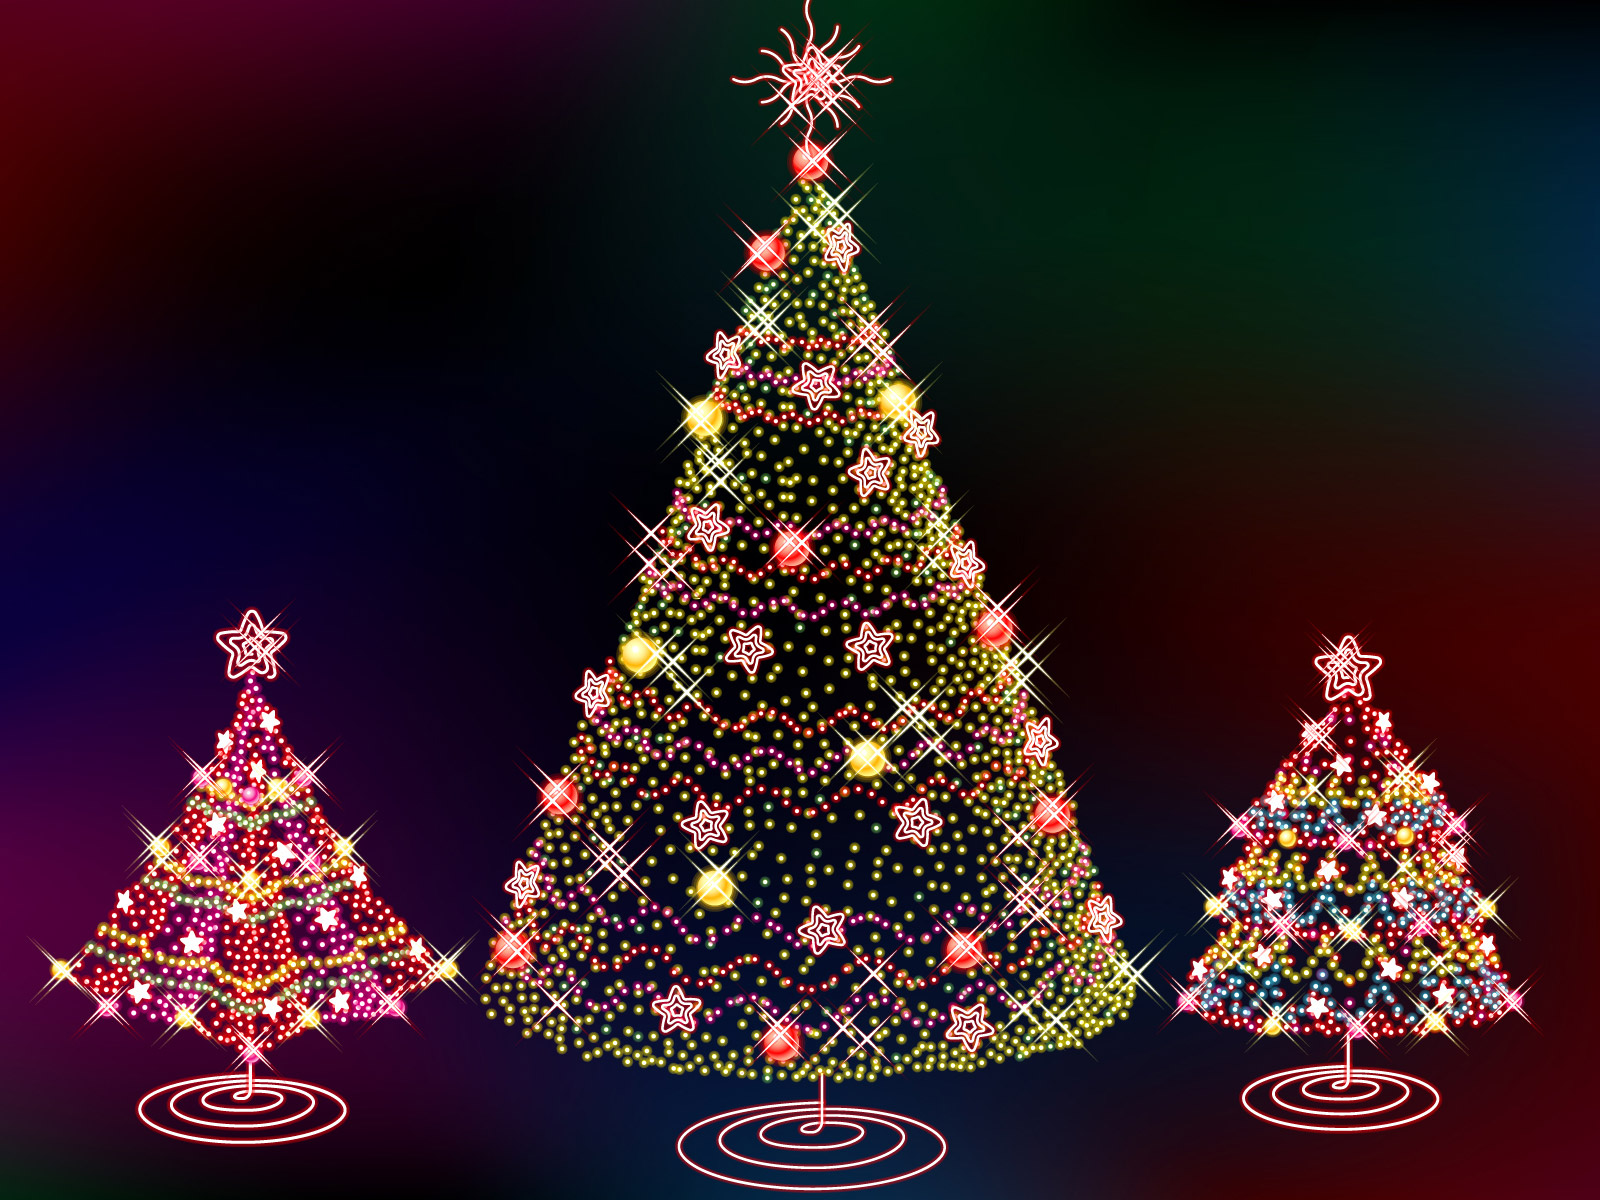 Best Desktop HD Wallpaper - Christmas lights wallpapers